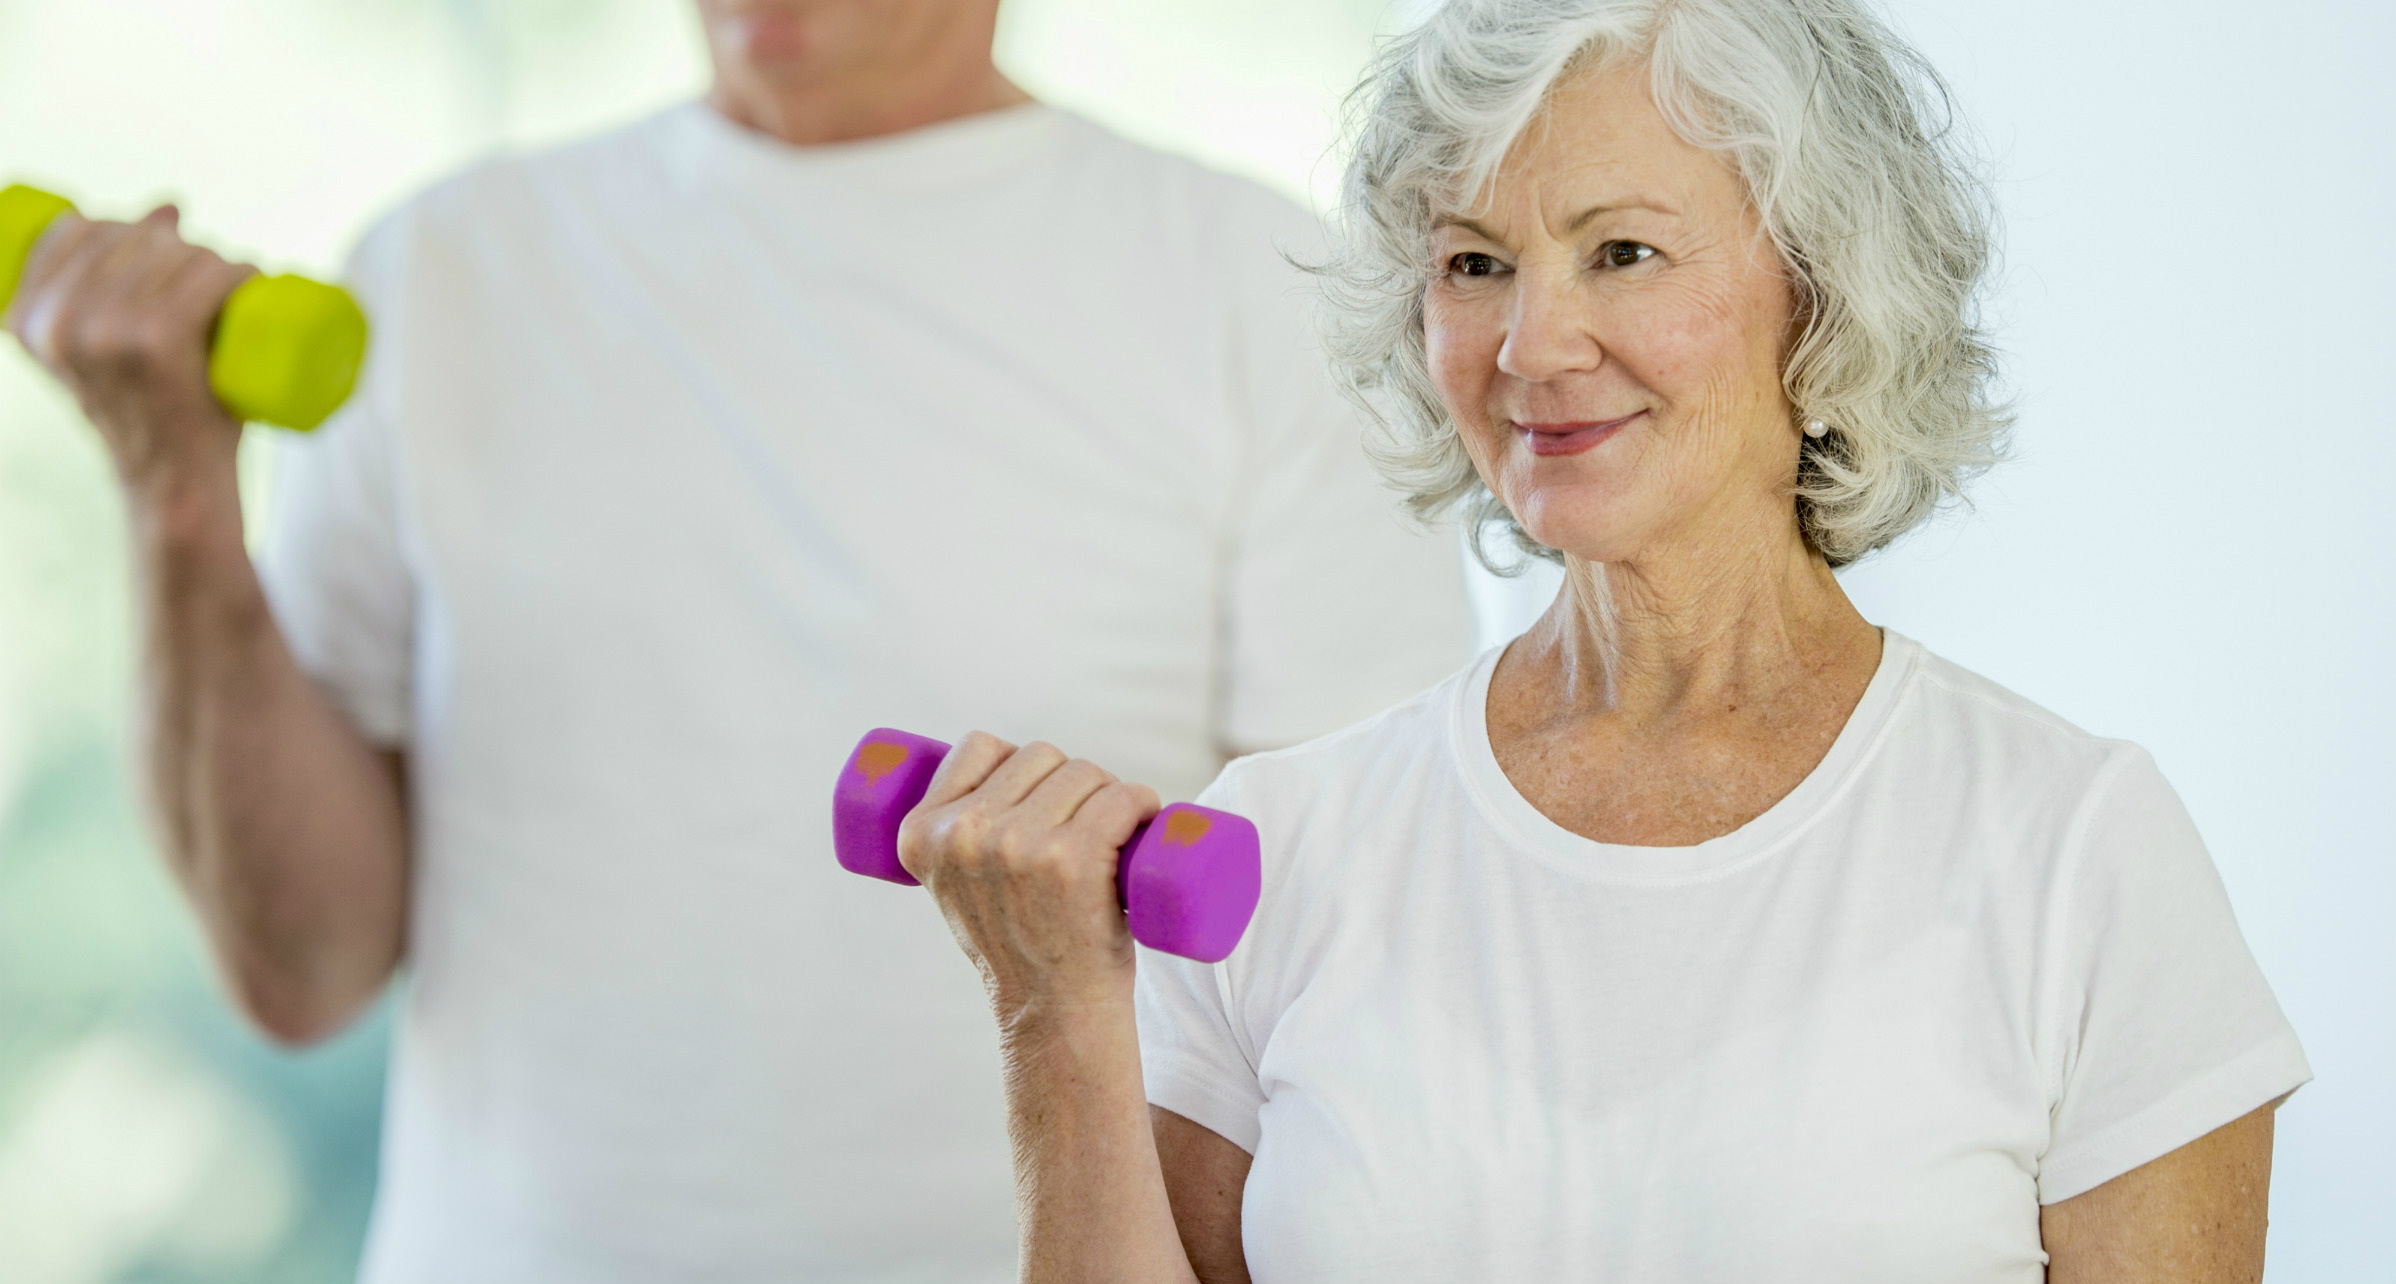 Senior Fitness   MEMBERSHIP - 12 MONTHS   12 Month Contractual Commitment  Features: 2 Classes per Week, Access to App Reservation, Fitmetrix Heart Rate Tracking, 1 Complimentary Personal Training Session (30 Minutes), 1 Complimentary Nutrition Coaching Session (30 Minutes)